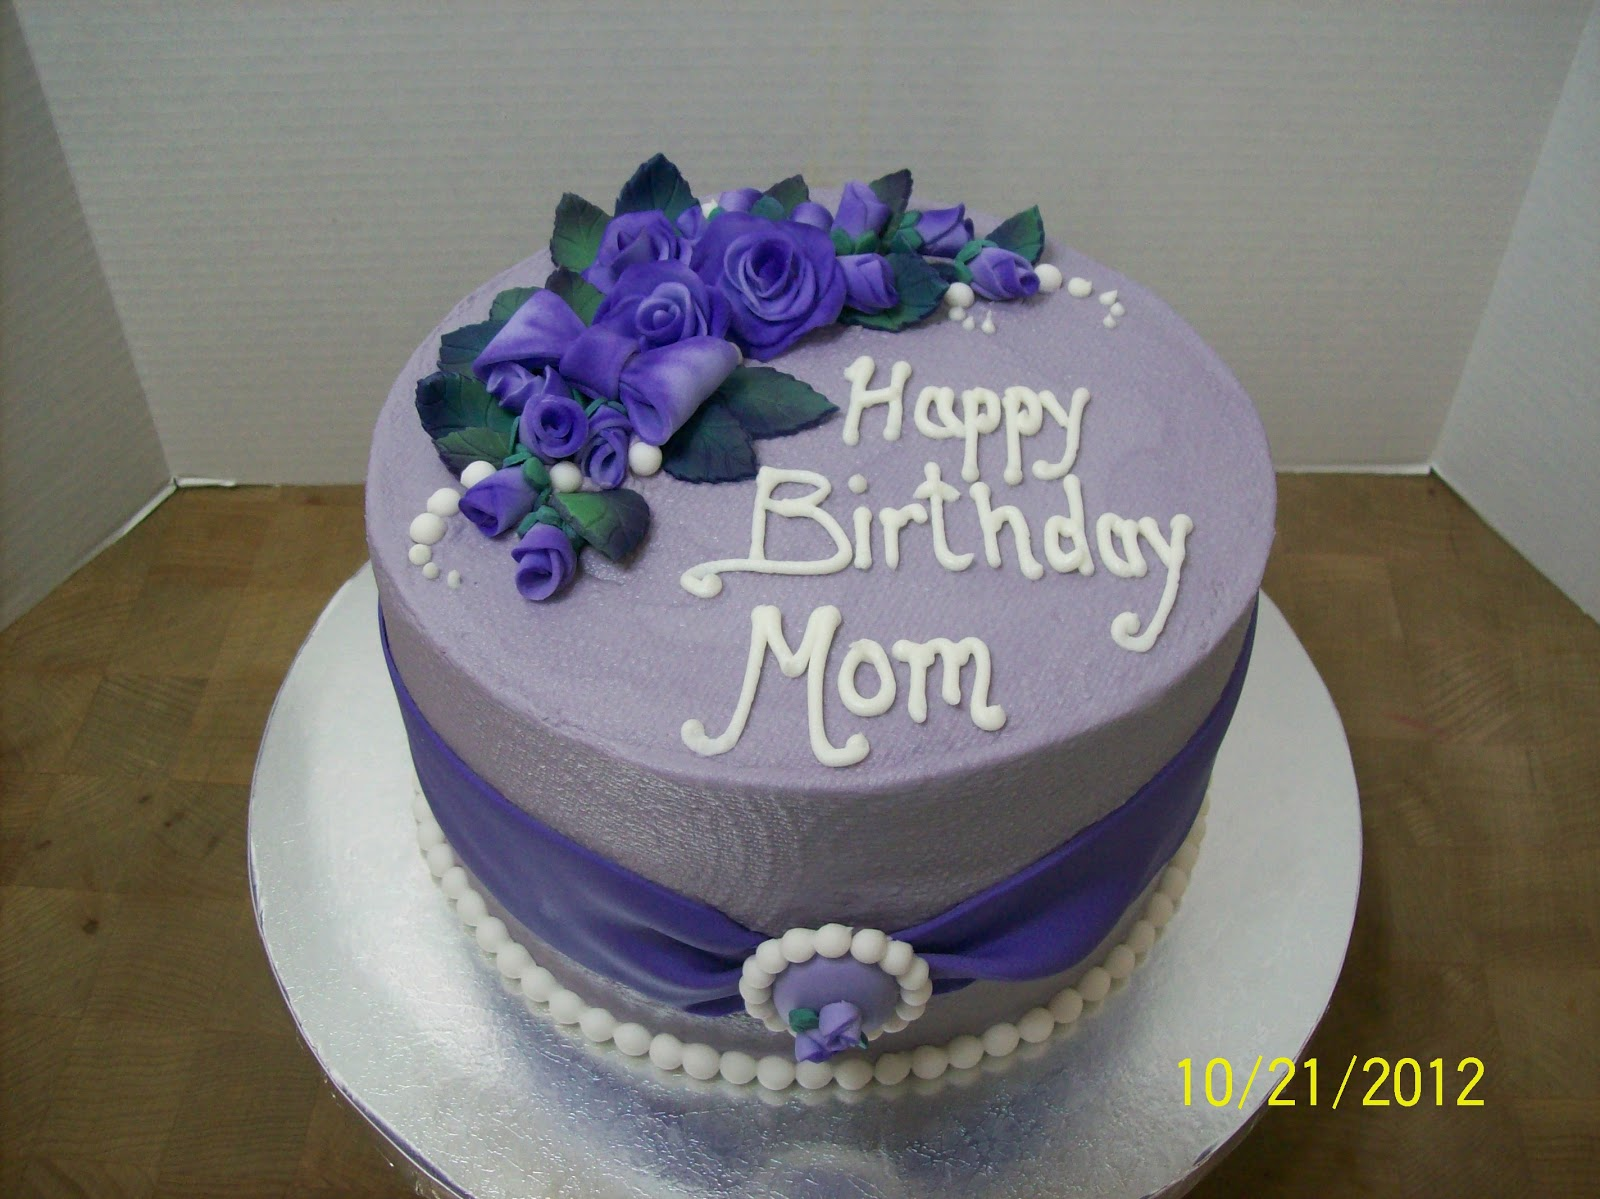 Cake Pictures For Mom : Image Gallery october birthday cakes mom